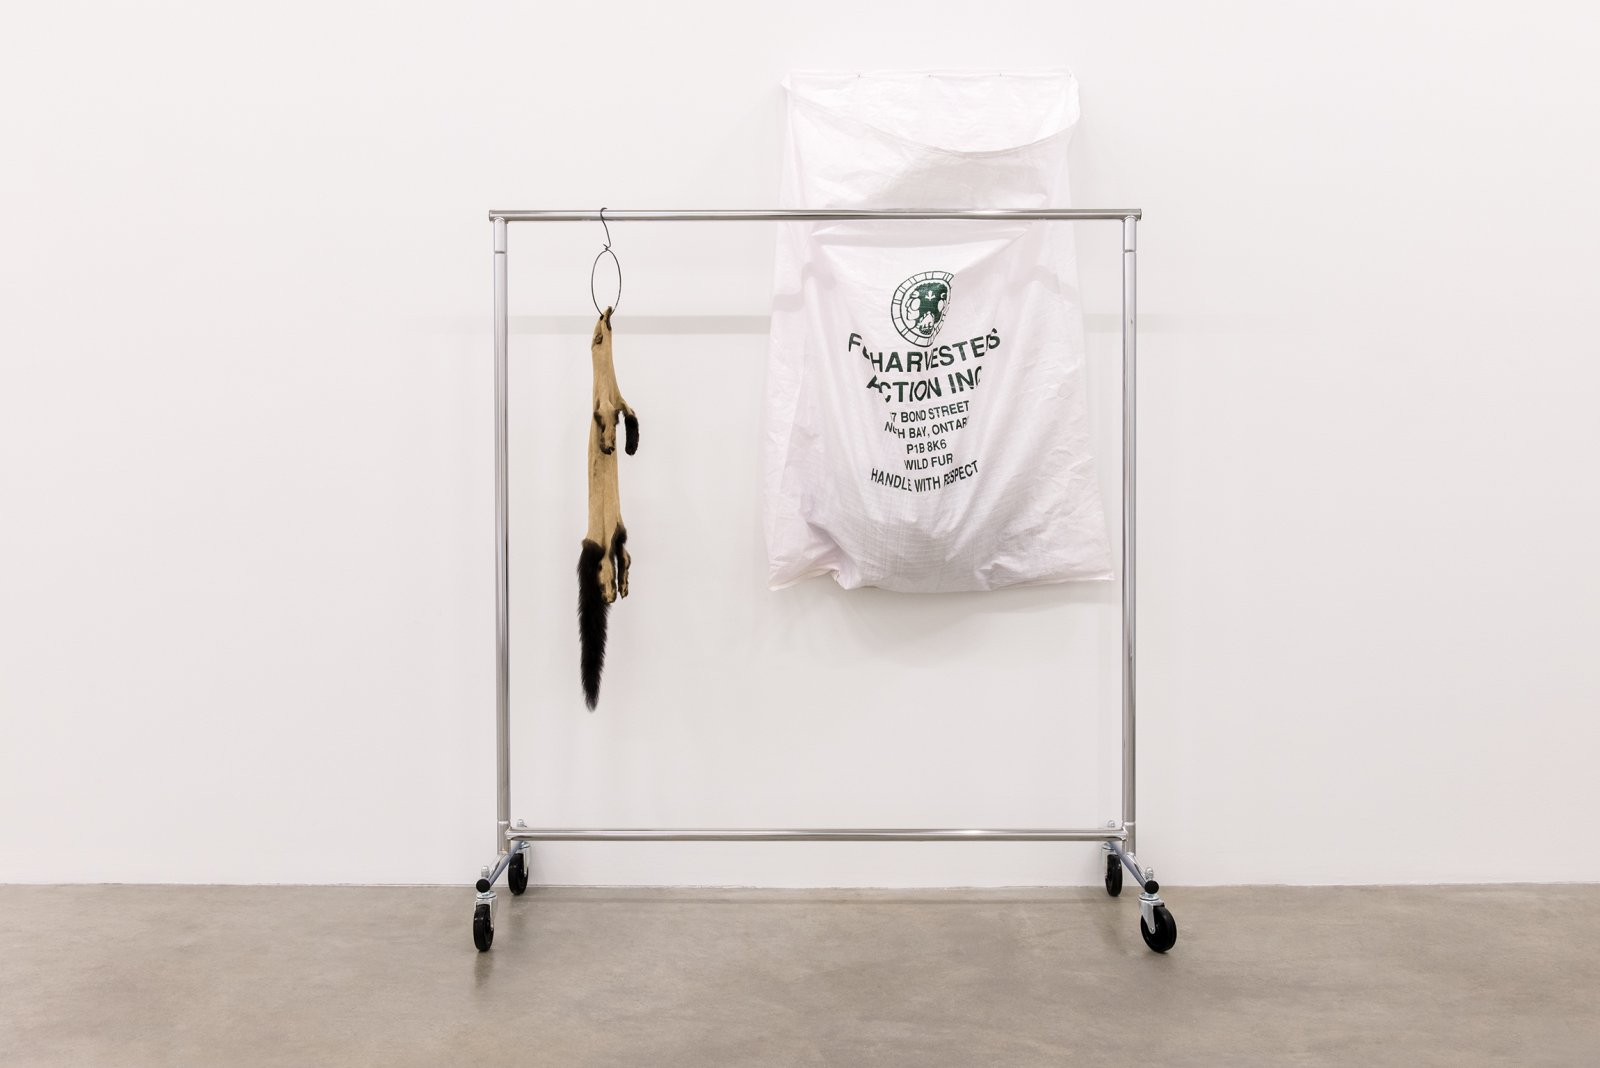 Duane Linklater, The state that I seek to name, 2014, fisher fur, garment rack, hanger, hand dyed bag, coat, 82 x 60 x 20 inches (207 x 151 x 52 cm)